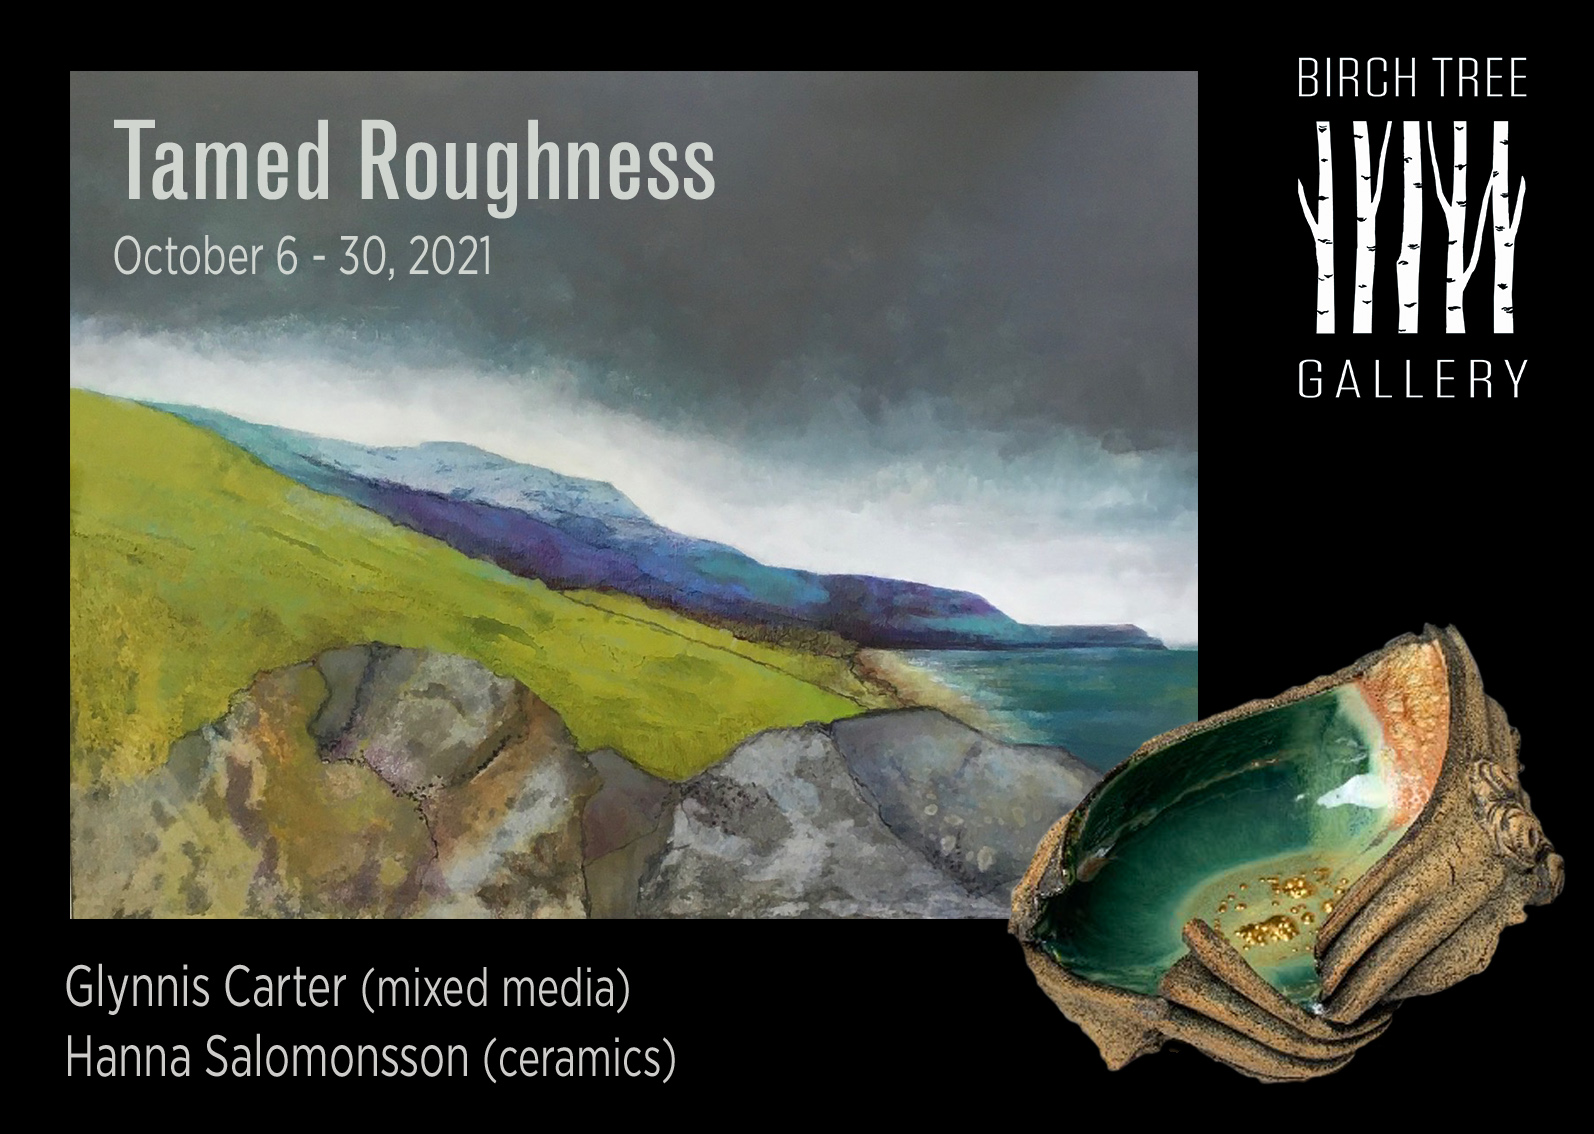 Birch Tree Gallery - Tamed Roughness